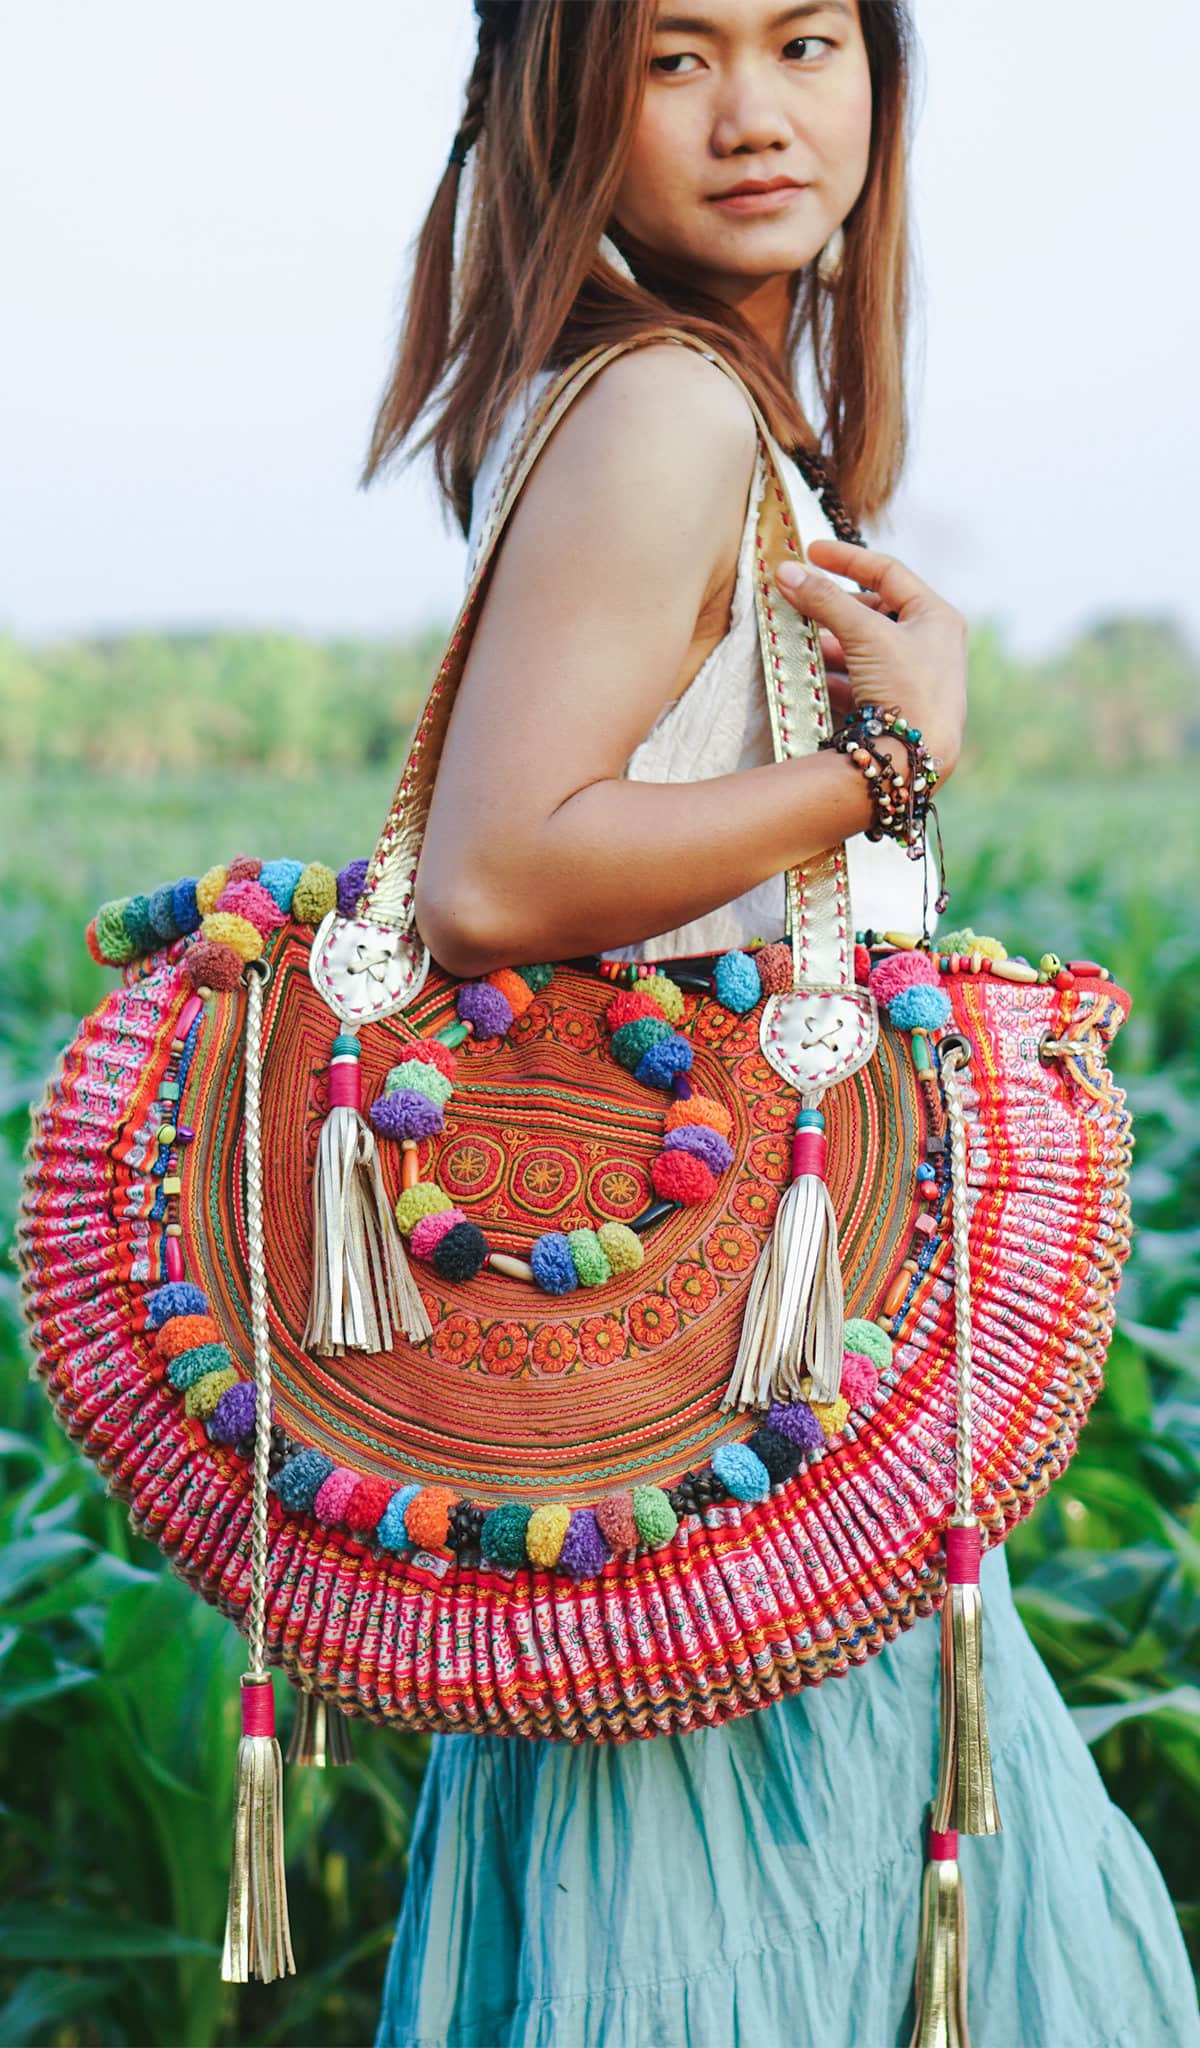 red vintage half moon beach bag for women with Hmong embroidery